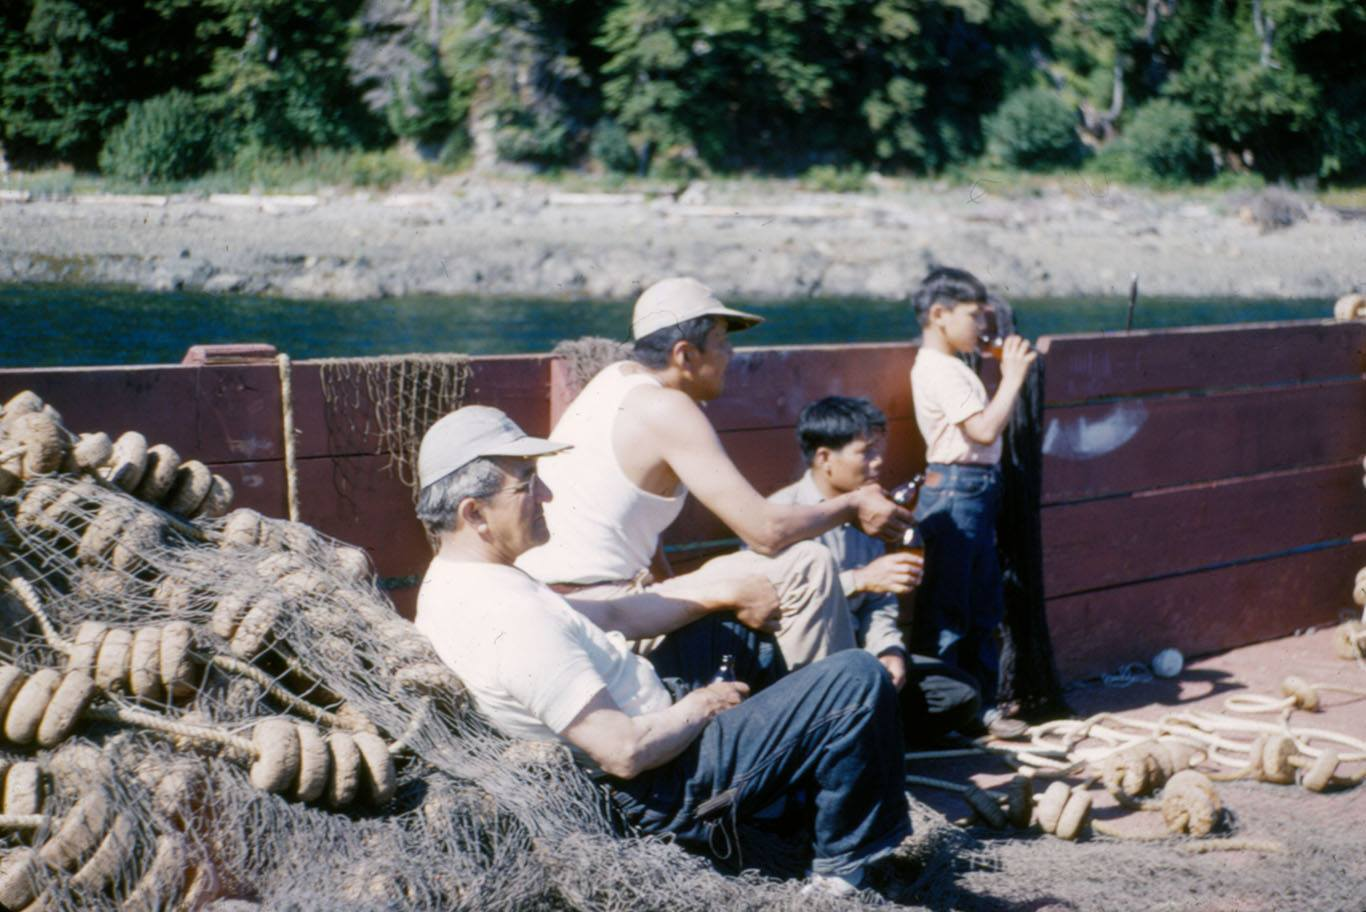 William L. Paul Sr. (left) with Walter Soboleff, M. Quinto and Ray Peck on a boat. (Photo courtesy of Sealaska Heritage)